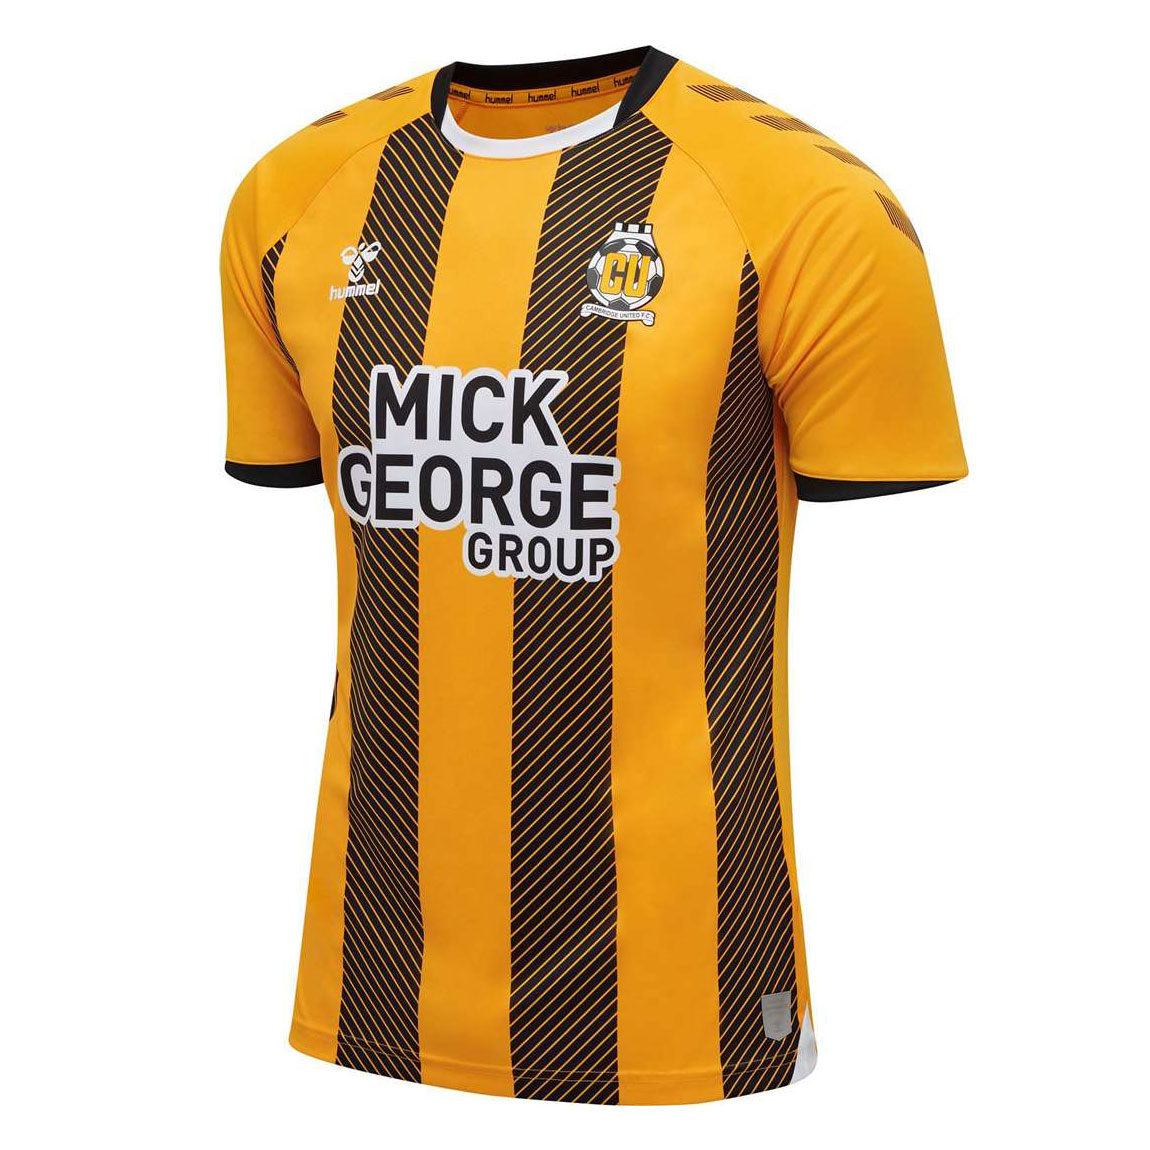 http://www.footballshirtculture.com/images/stories/cambridge-united-2020-2021-home-kit/cambridge_united_2020_2021_home_kit_a.jpg